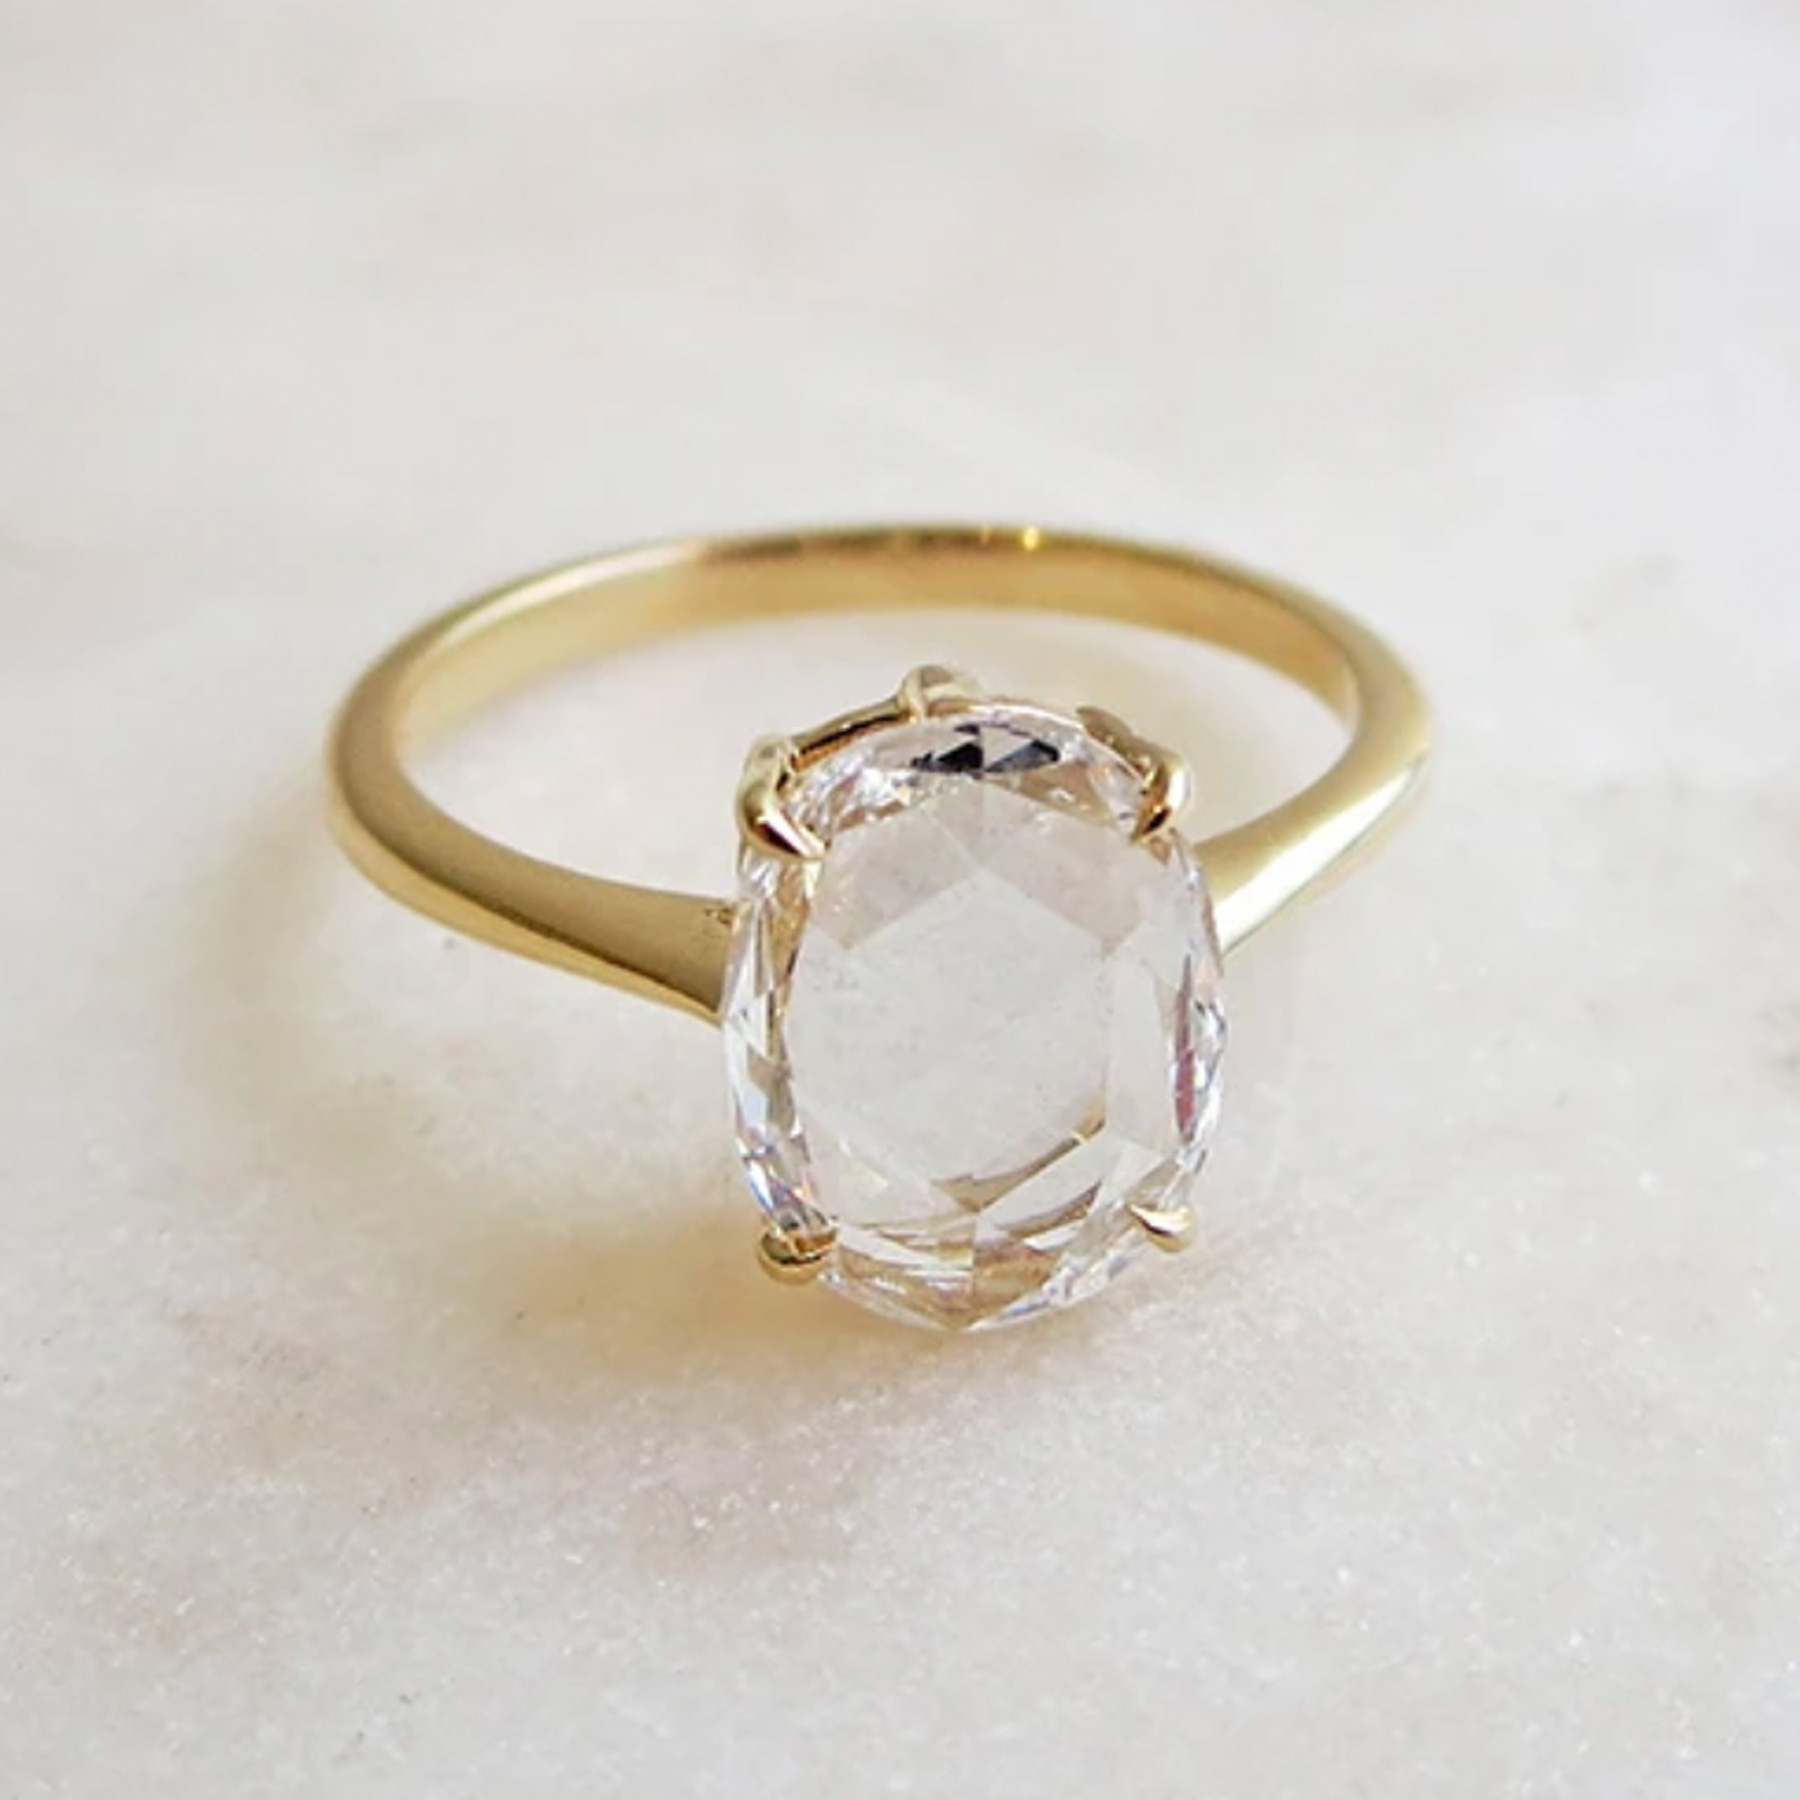 Engagement Ring Trends 2021: Anna Sheffield rose cut diamond ring